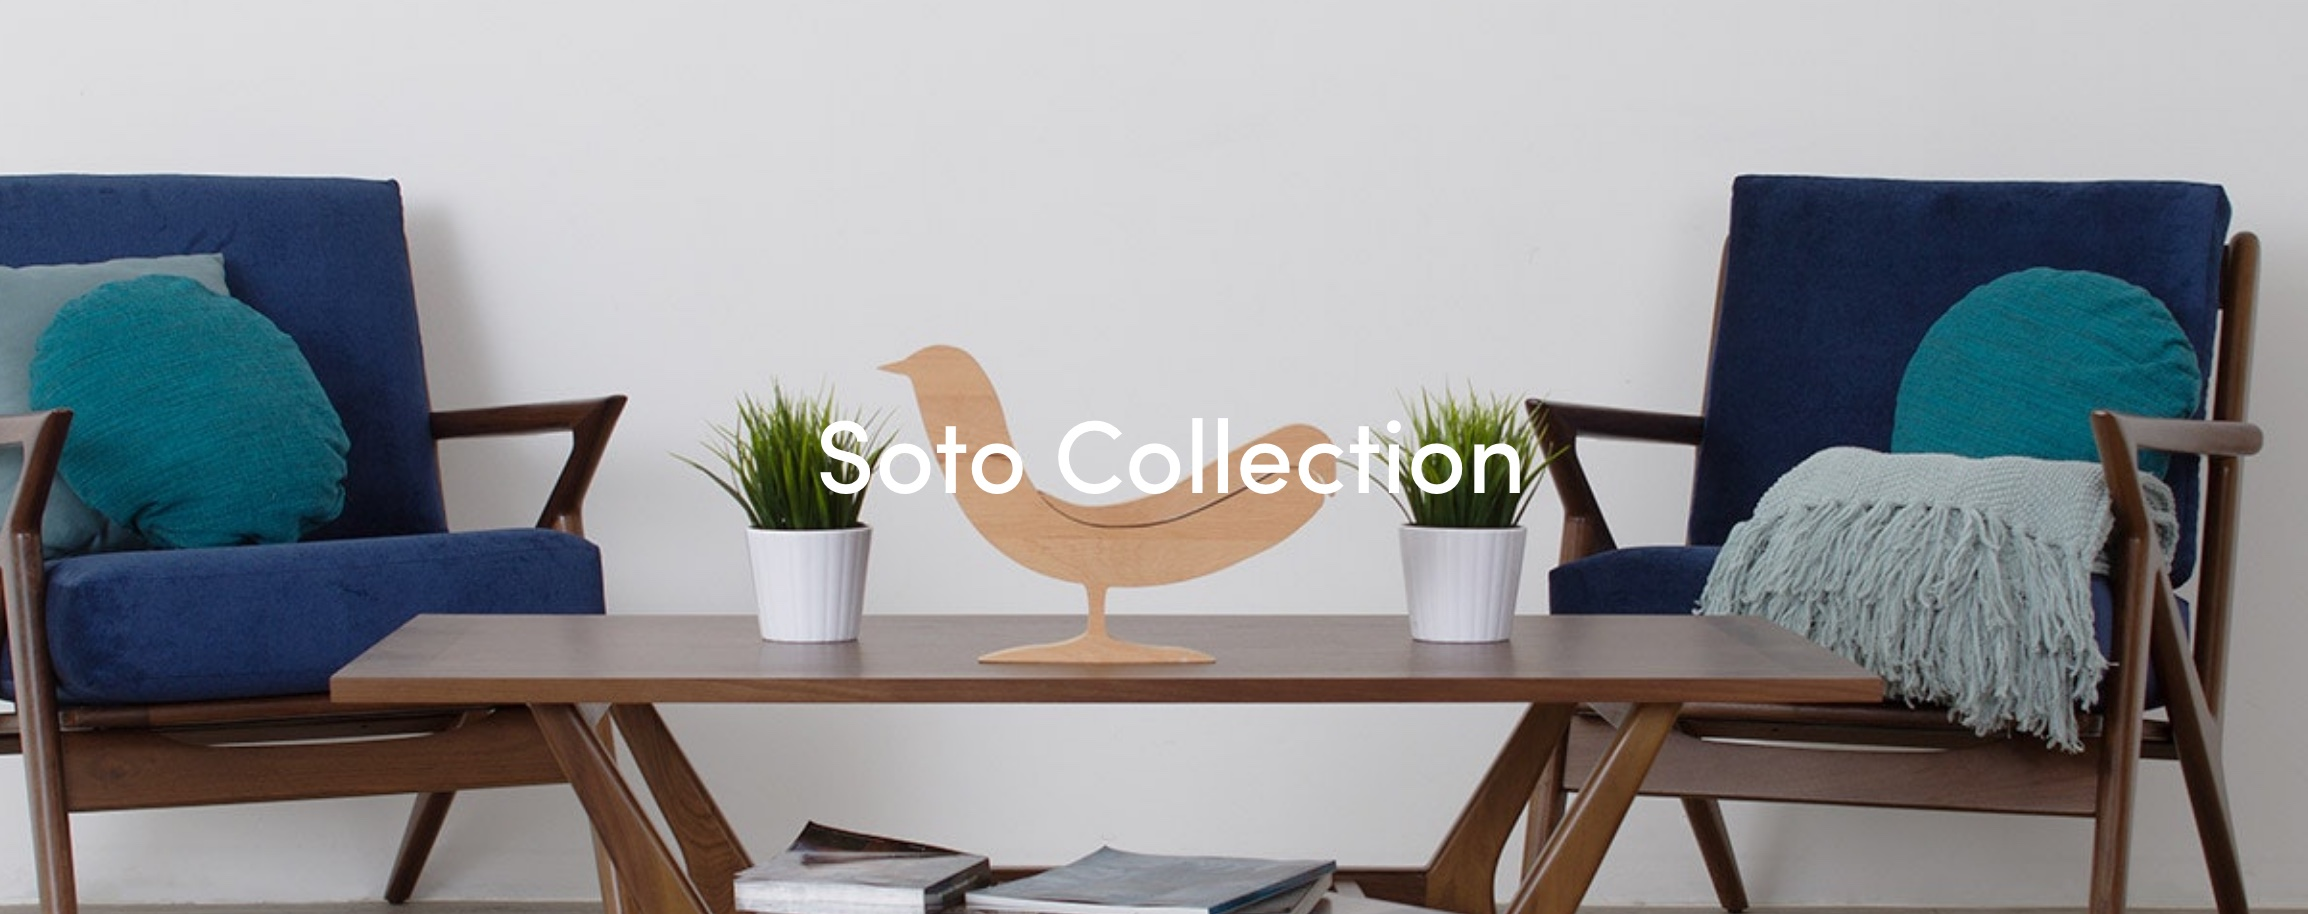 joybird desk chair ergonomic nairobi 3rings get happy with the furniture soto collection two chairs and table